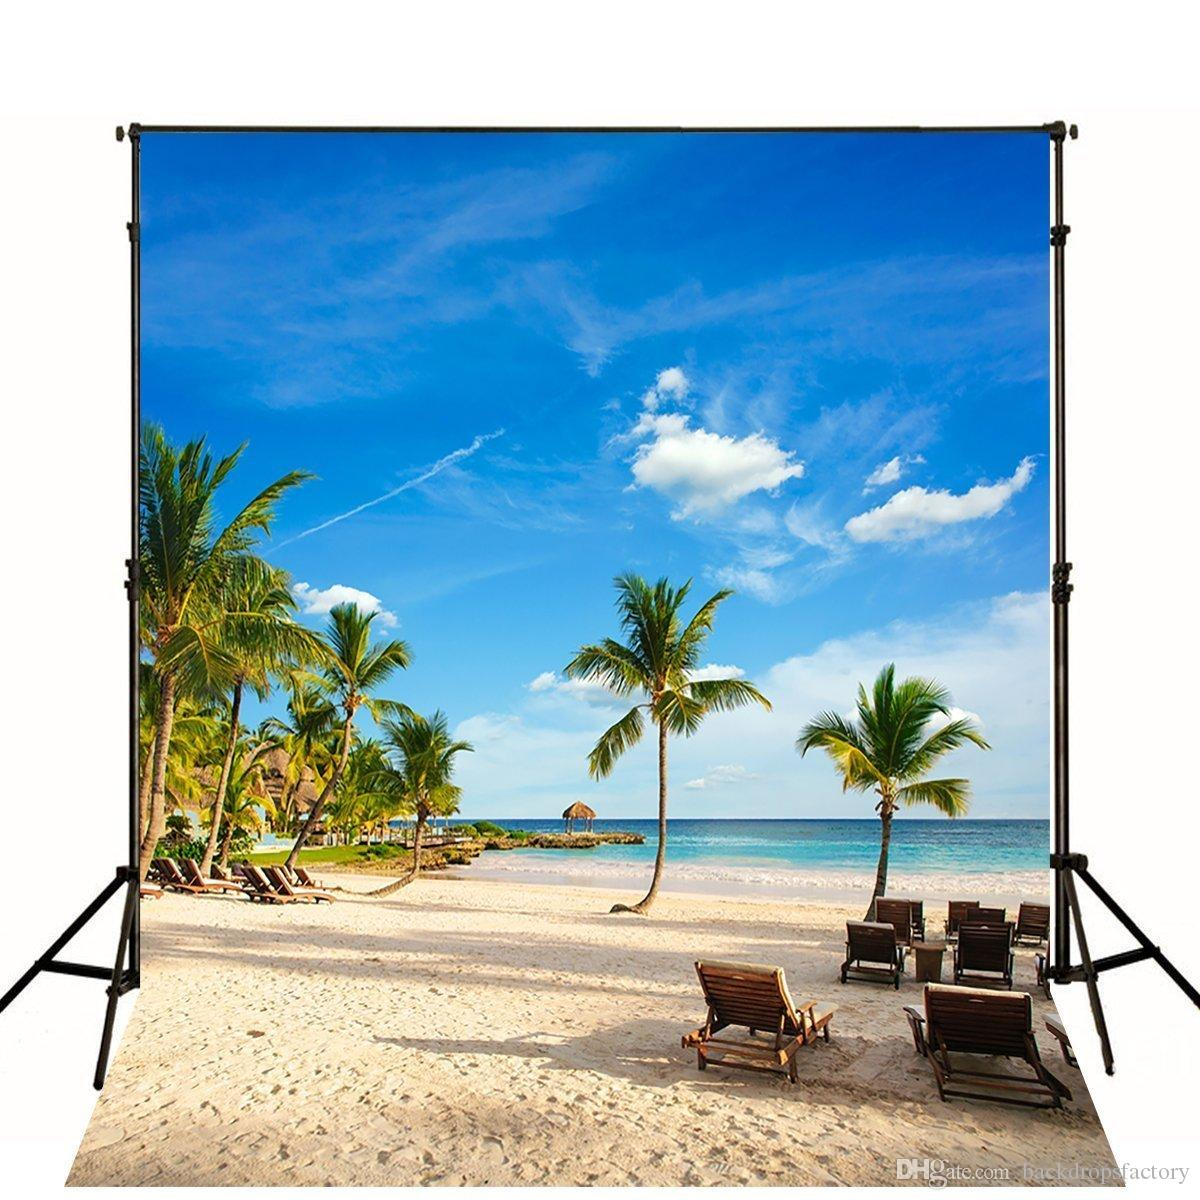 Sand Beach In Summer Sky Background: 2019 5x7ft Tropical Rainforest Photography Backdrop Blue